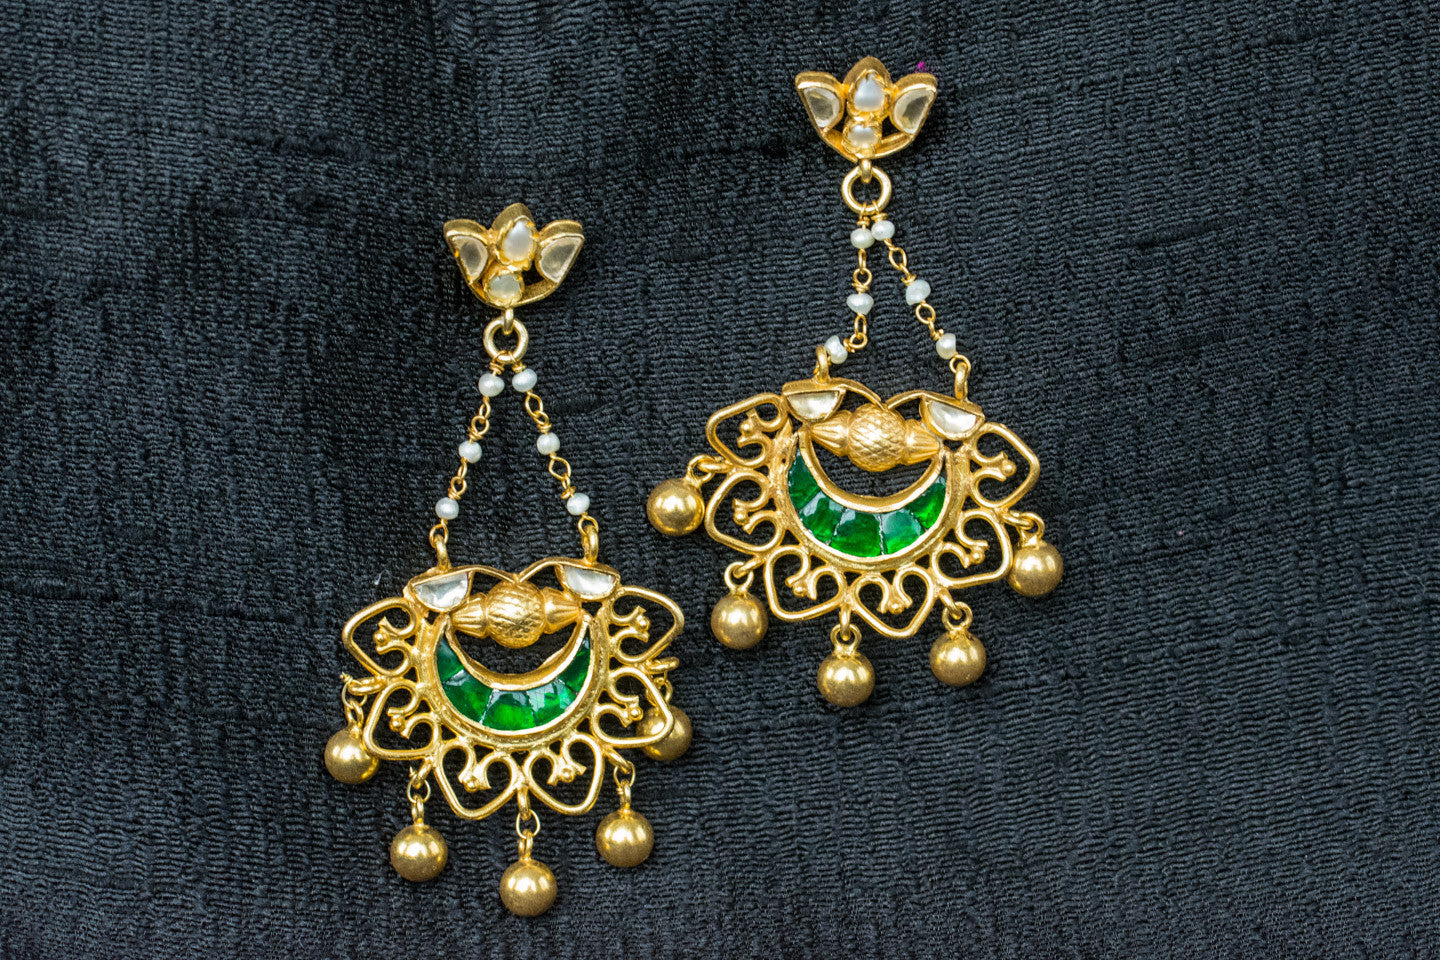 20a429-silver-plated-gold-amrapali-earrings-green-glass-pearl-floral-top